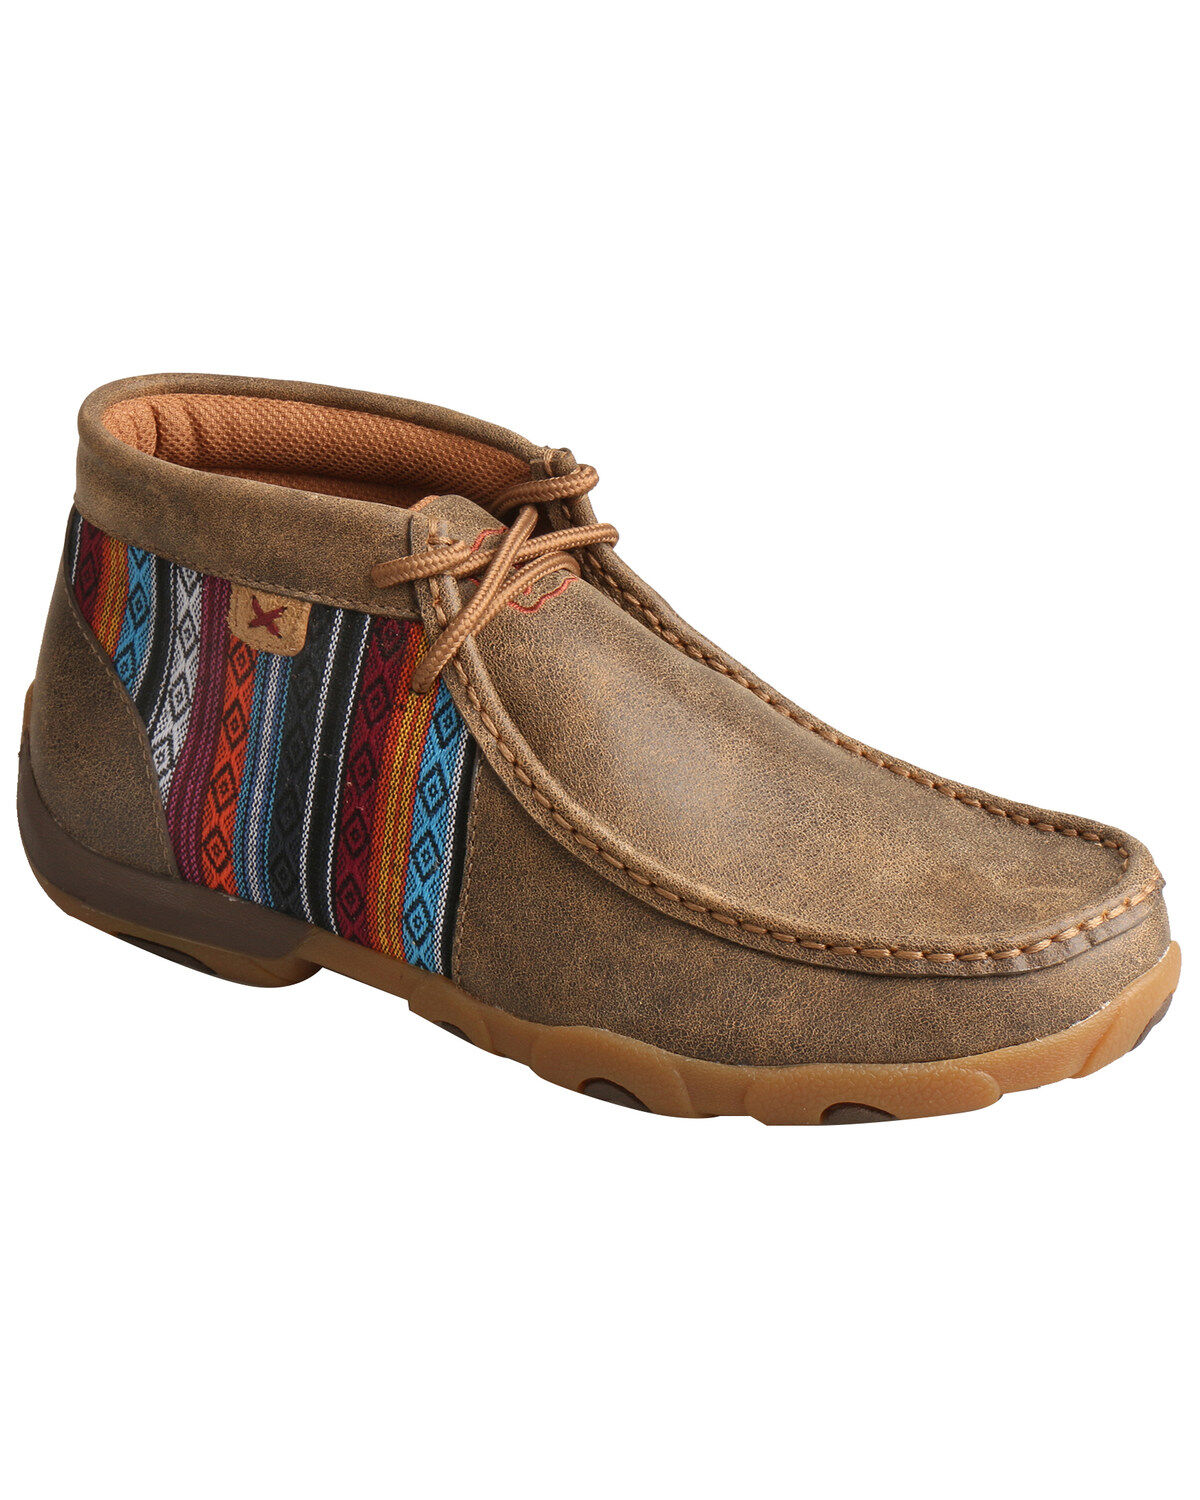 Twisted X Boots \u0026 Shoes - Boot Barn